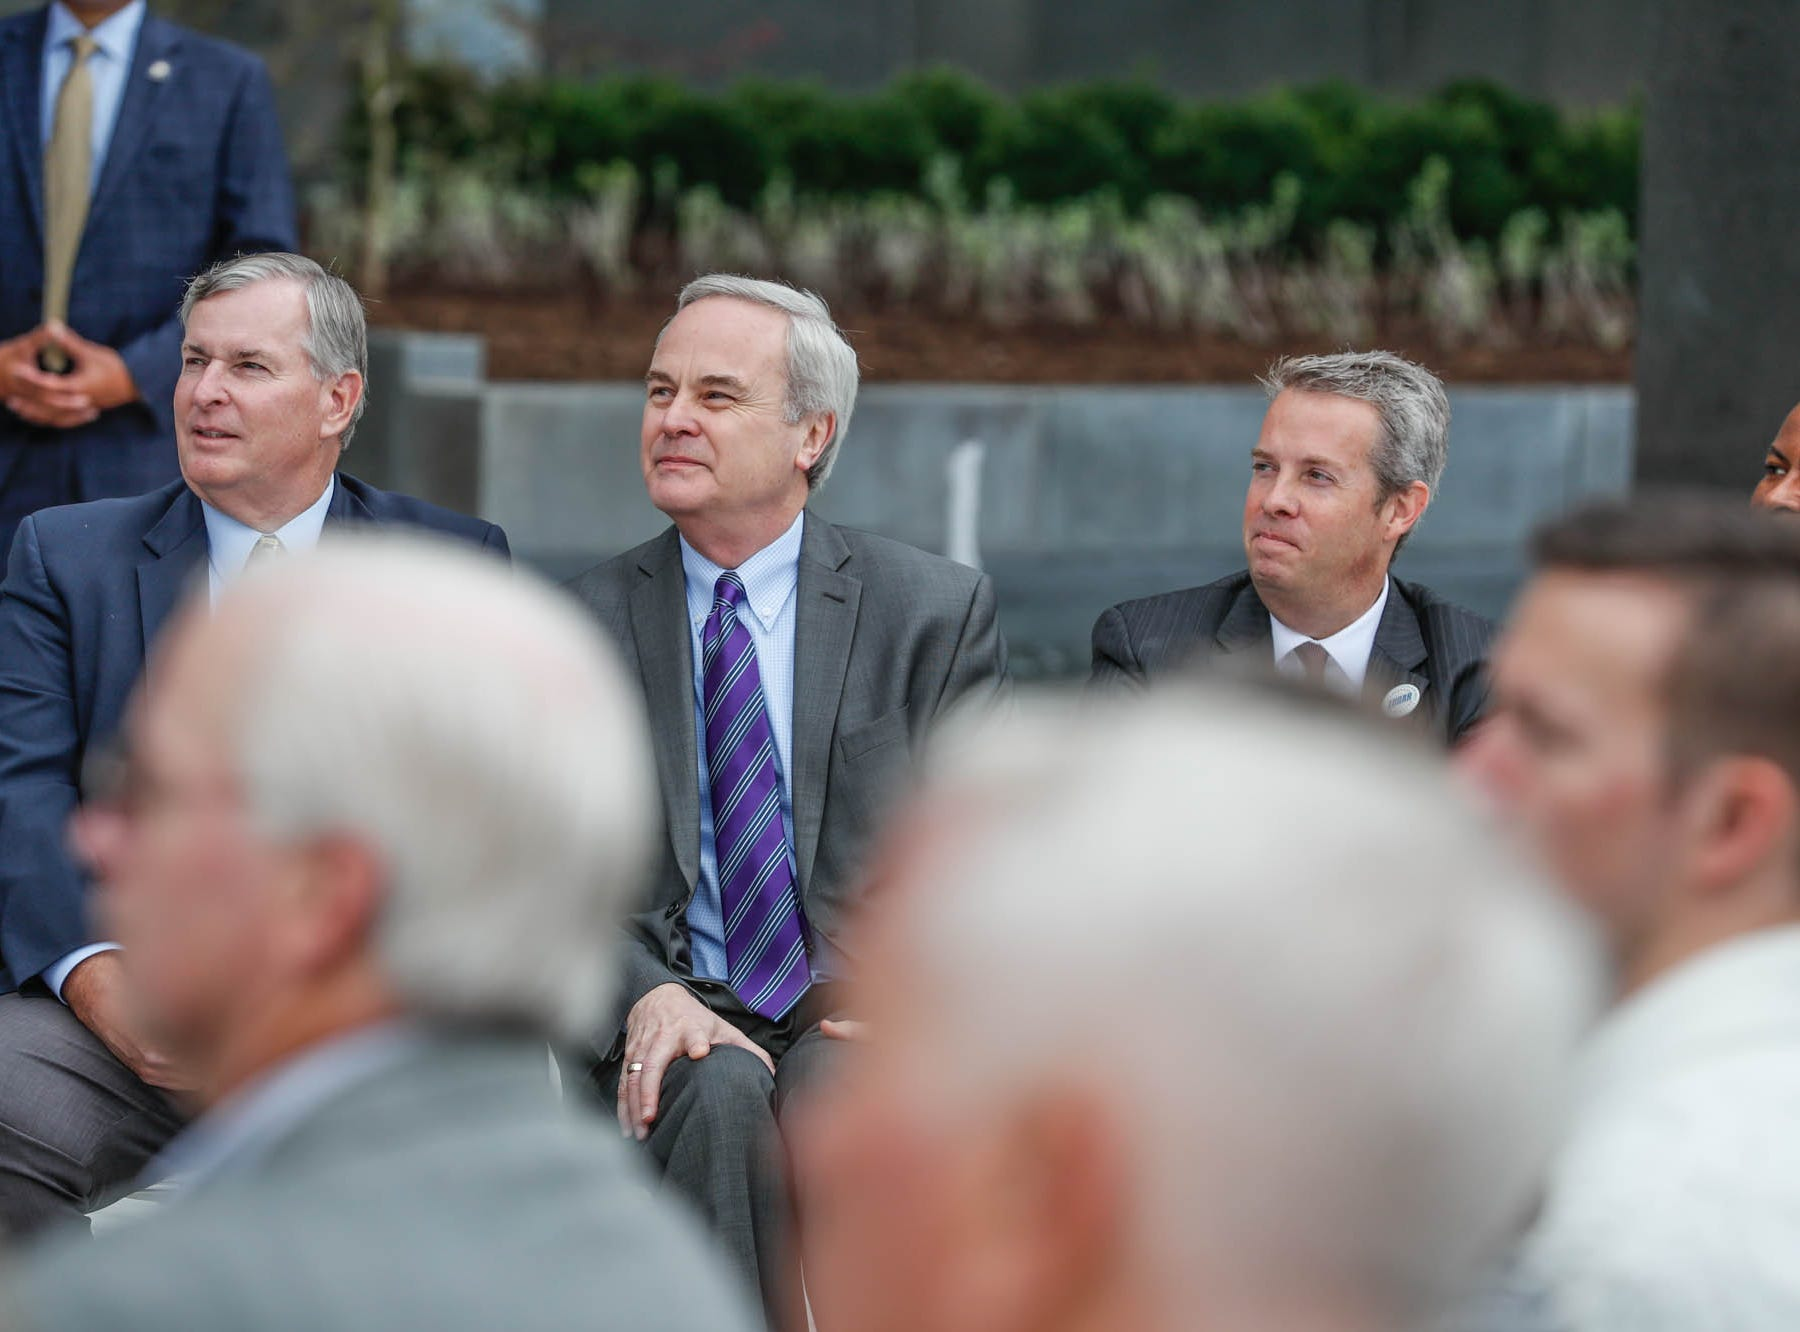 Guests listen to remarks during the reopening and dedication of Richard G. Lugar Plaza at the City-County Building in Indianapolis on Thursday, Oct. 11, 2018.